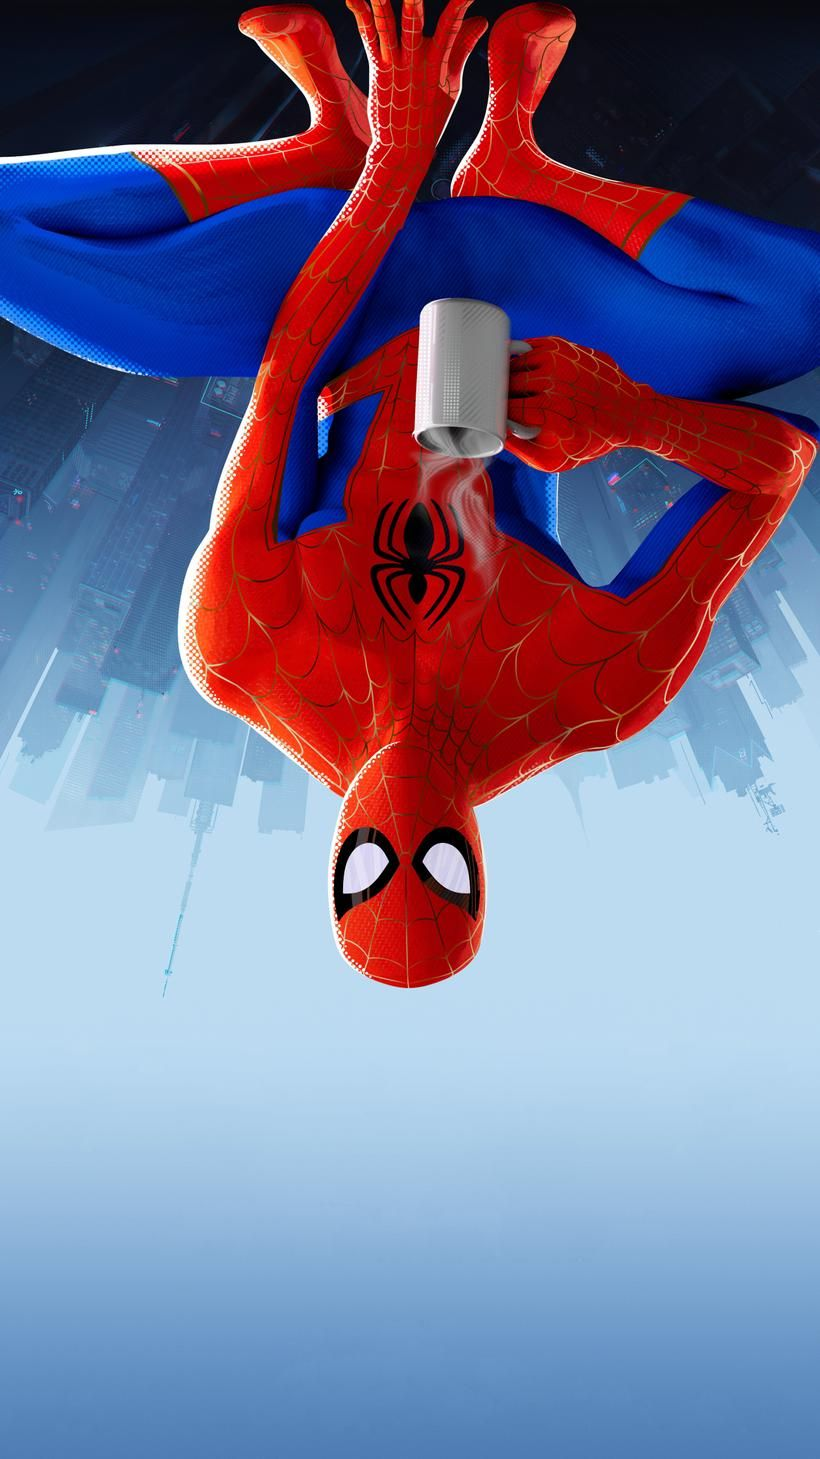 Into The Spider Verse Iphone Wallpaper Spiderman Art Spider Verse Iphone Wallpaper